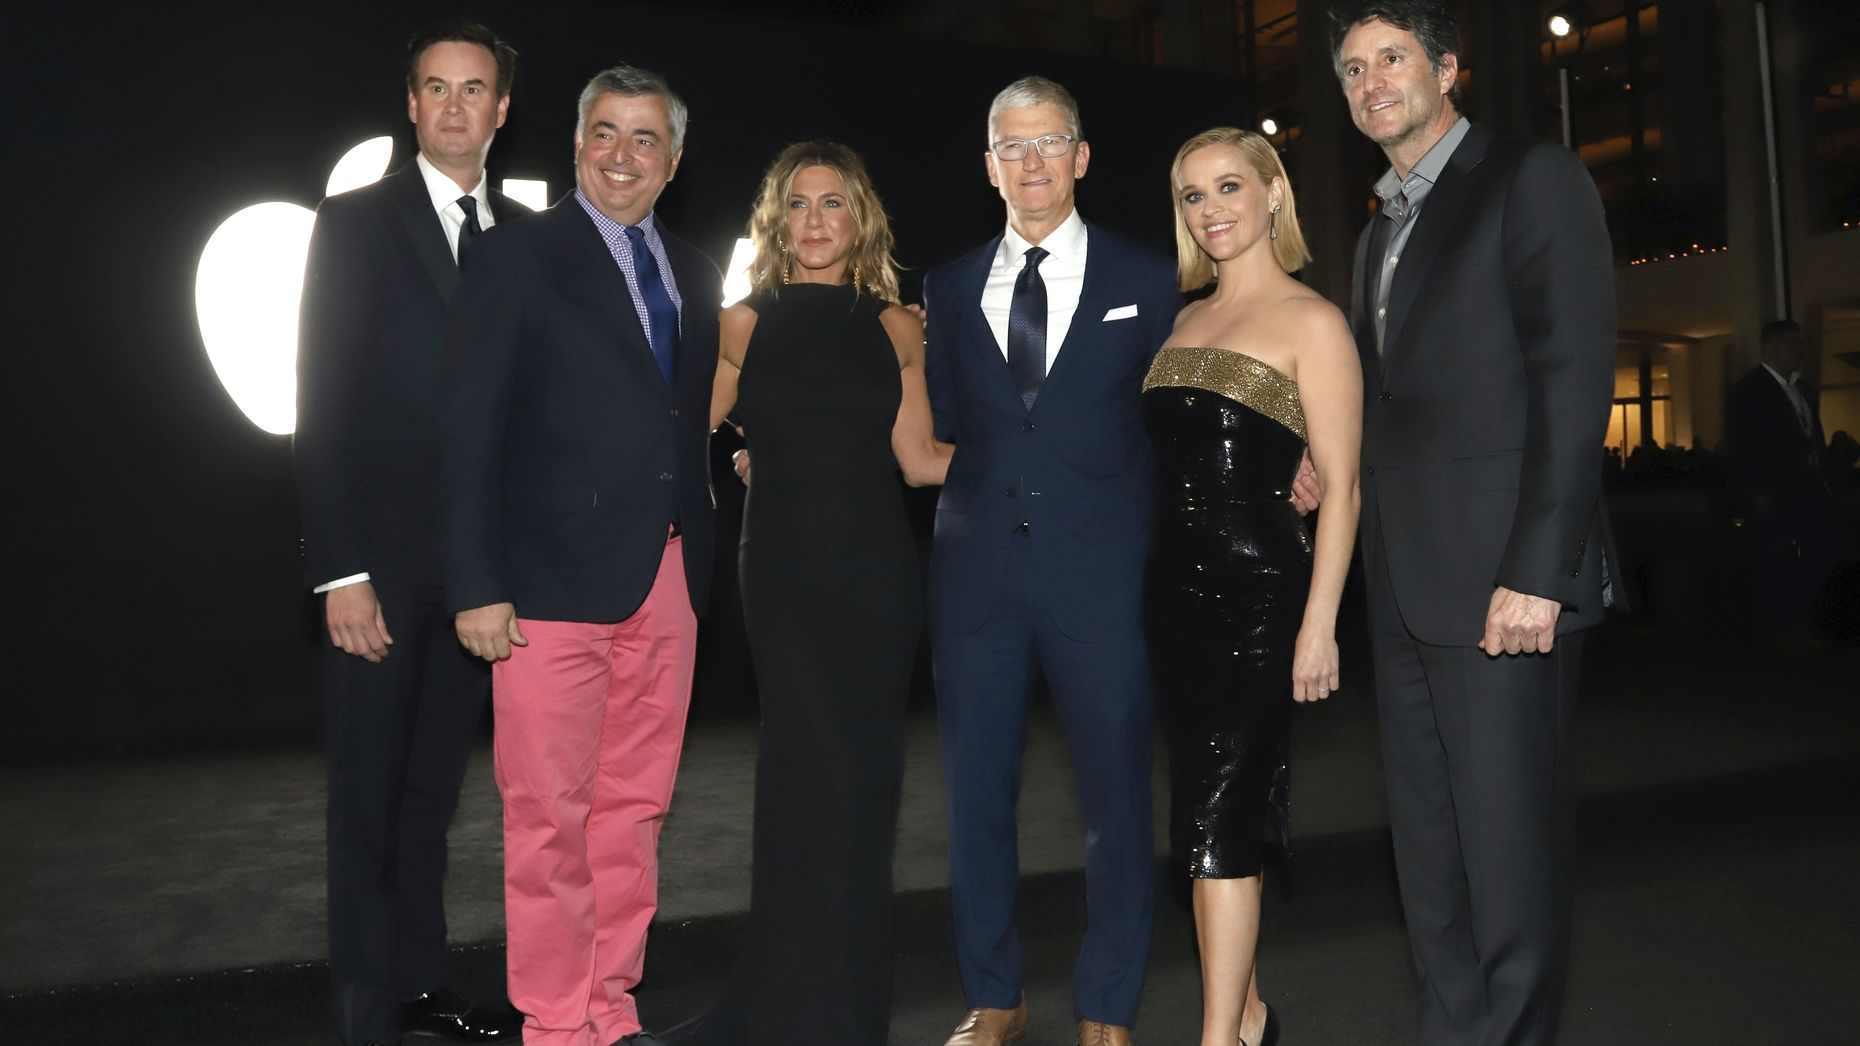 Apple's Zack Van Amburg, Eddy Cue (in red pants) with Jennifer Aniston, Apple CEO Tim Cook, Reese Witherspoon and Apple's Jamie Erlicht